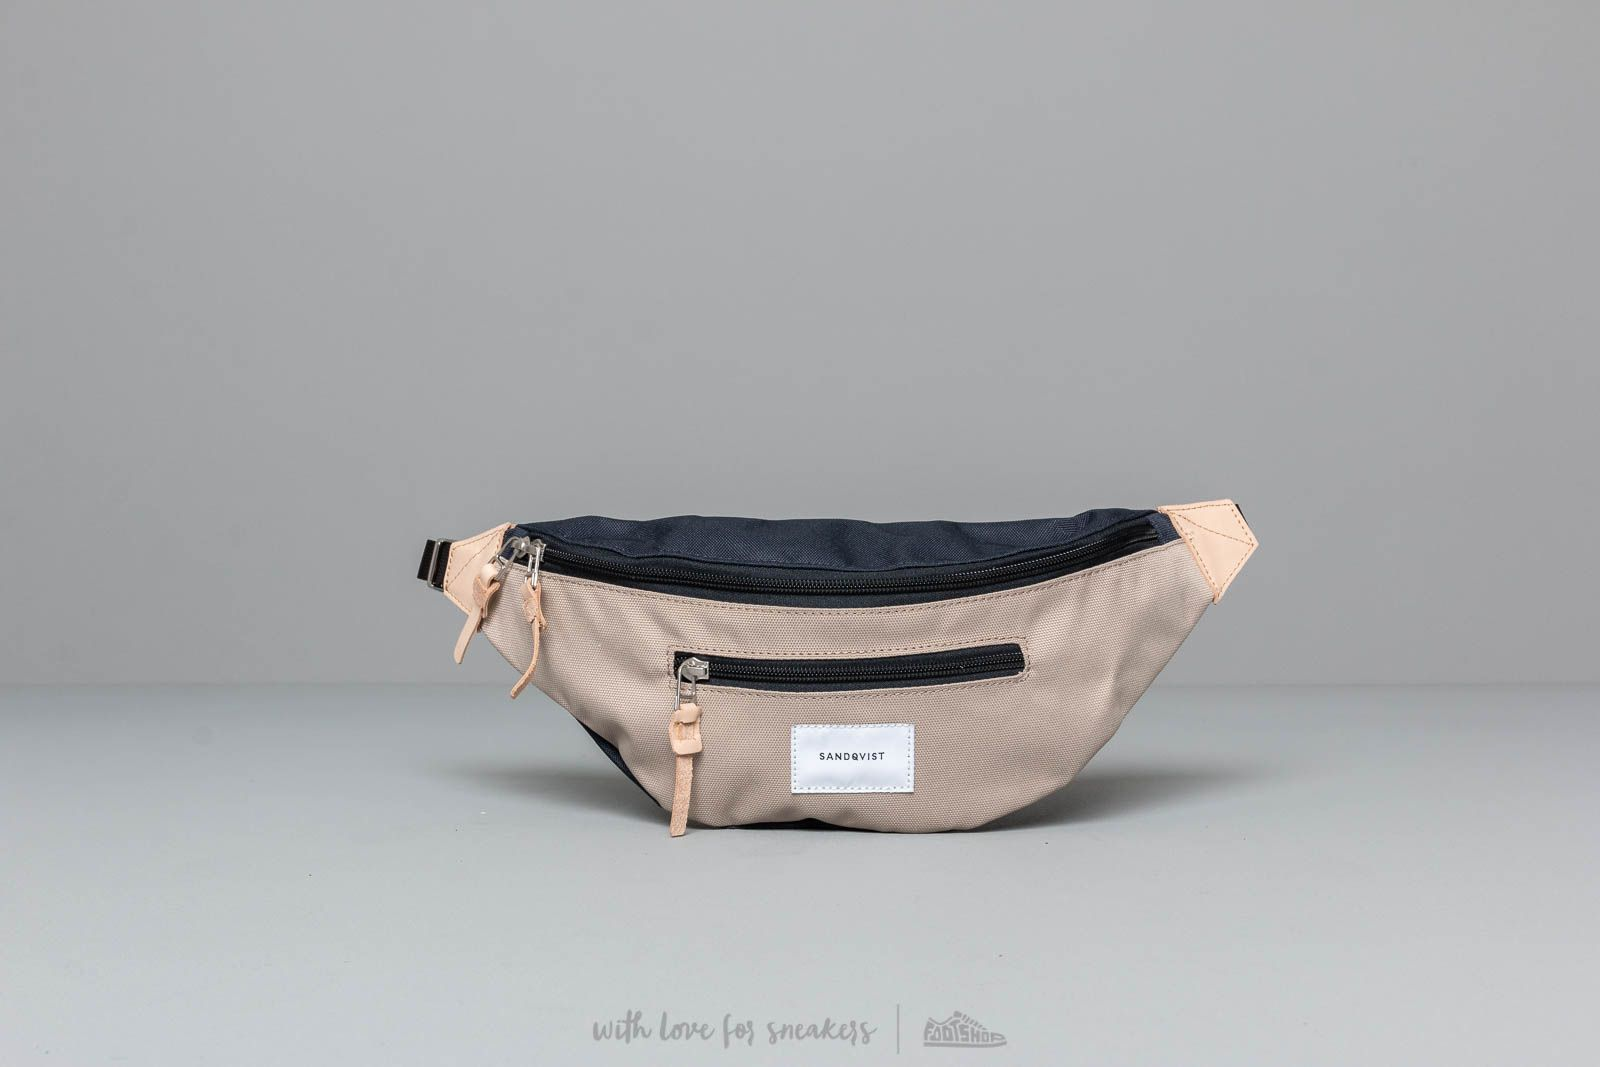 Sandqvist Urban Outdoor Aste Fanny Pack